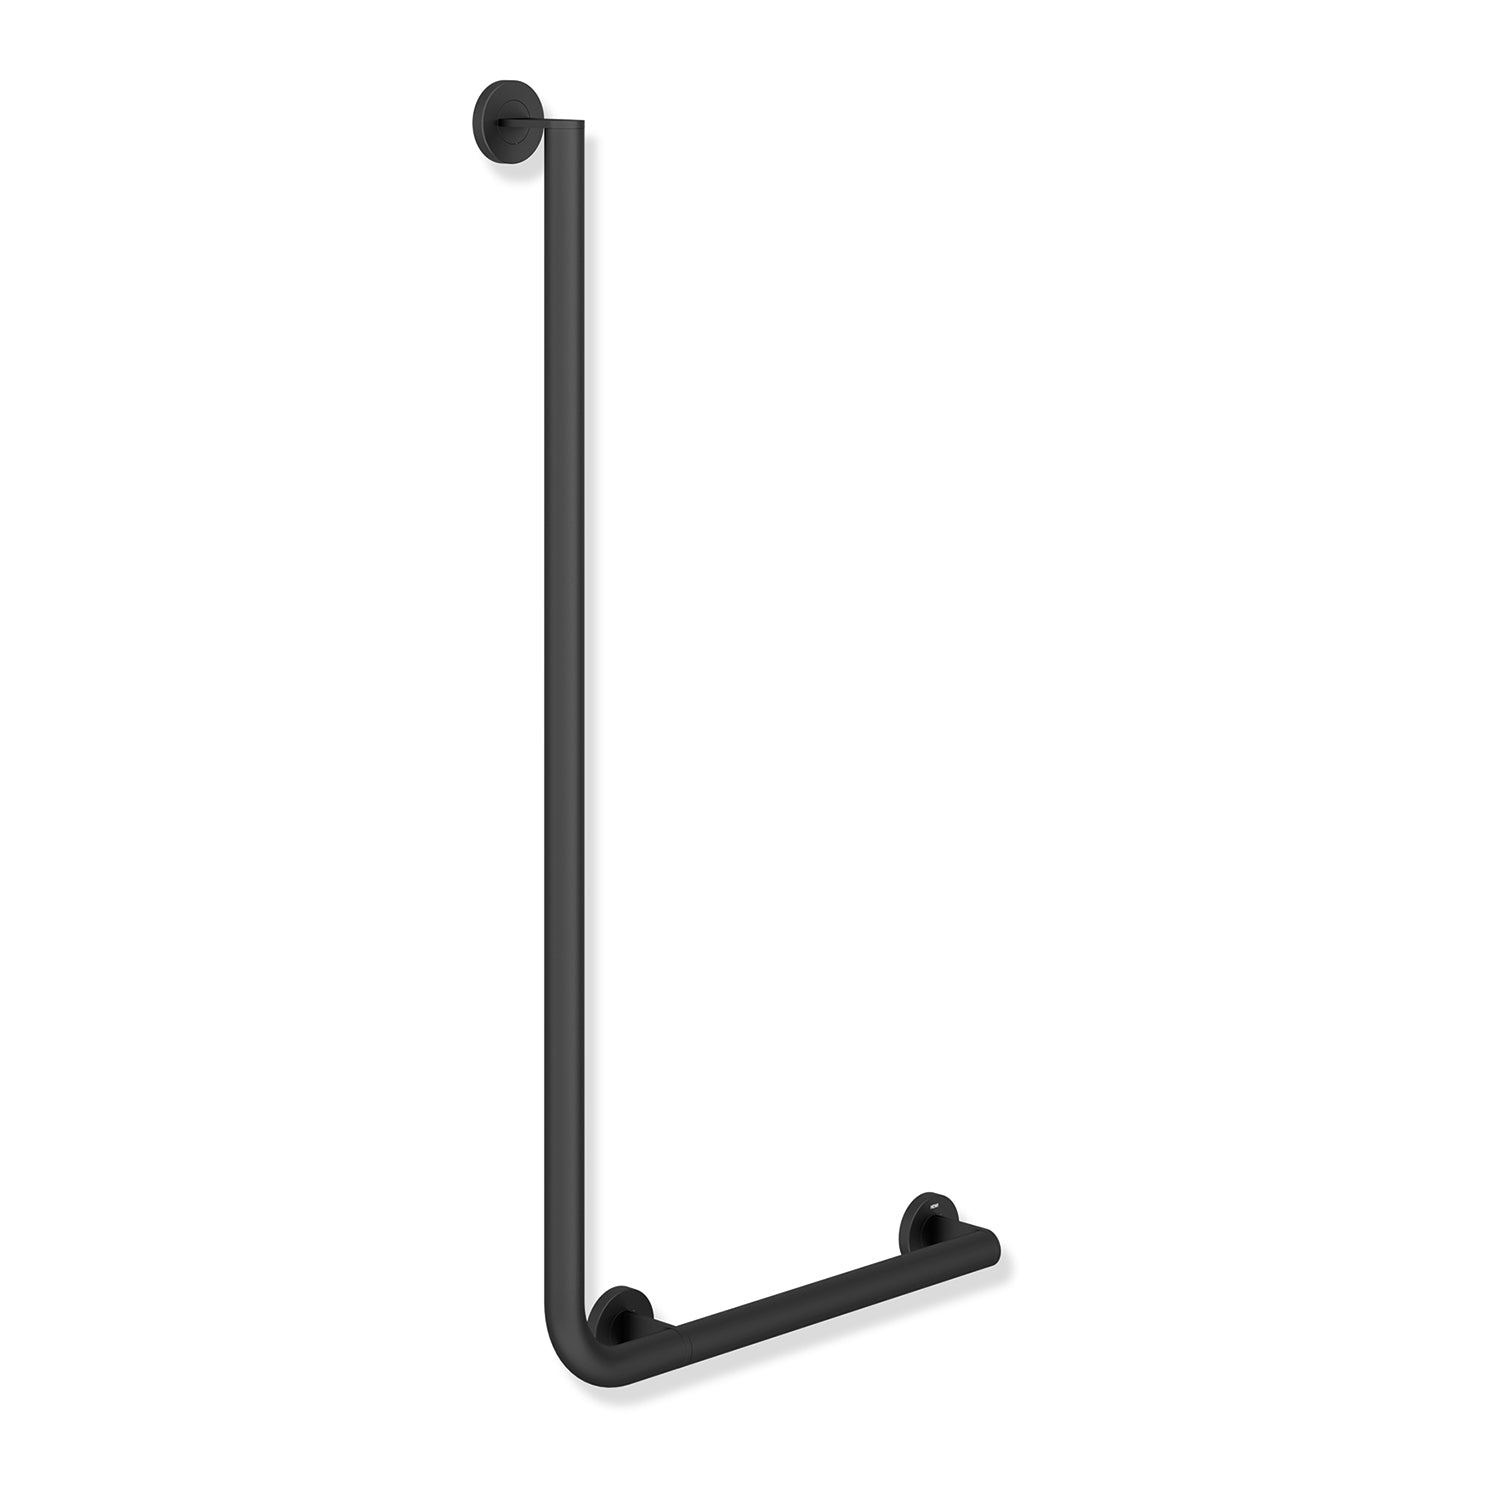 1000x500mm Right Handed Freestyle L Shaped Grab Rail with a matt black finish on a white background